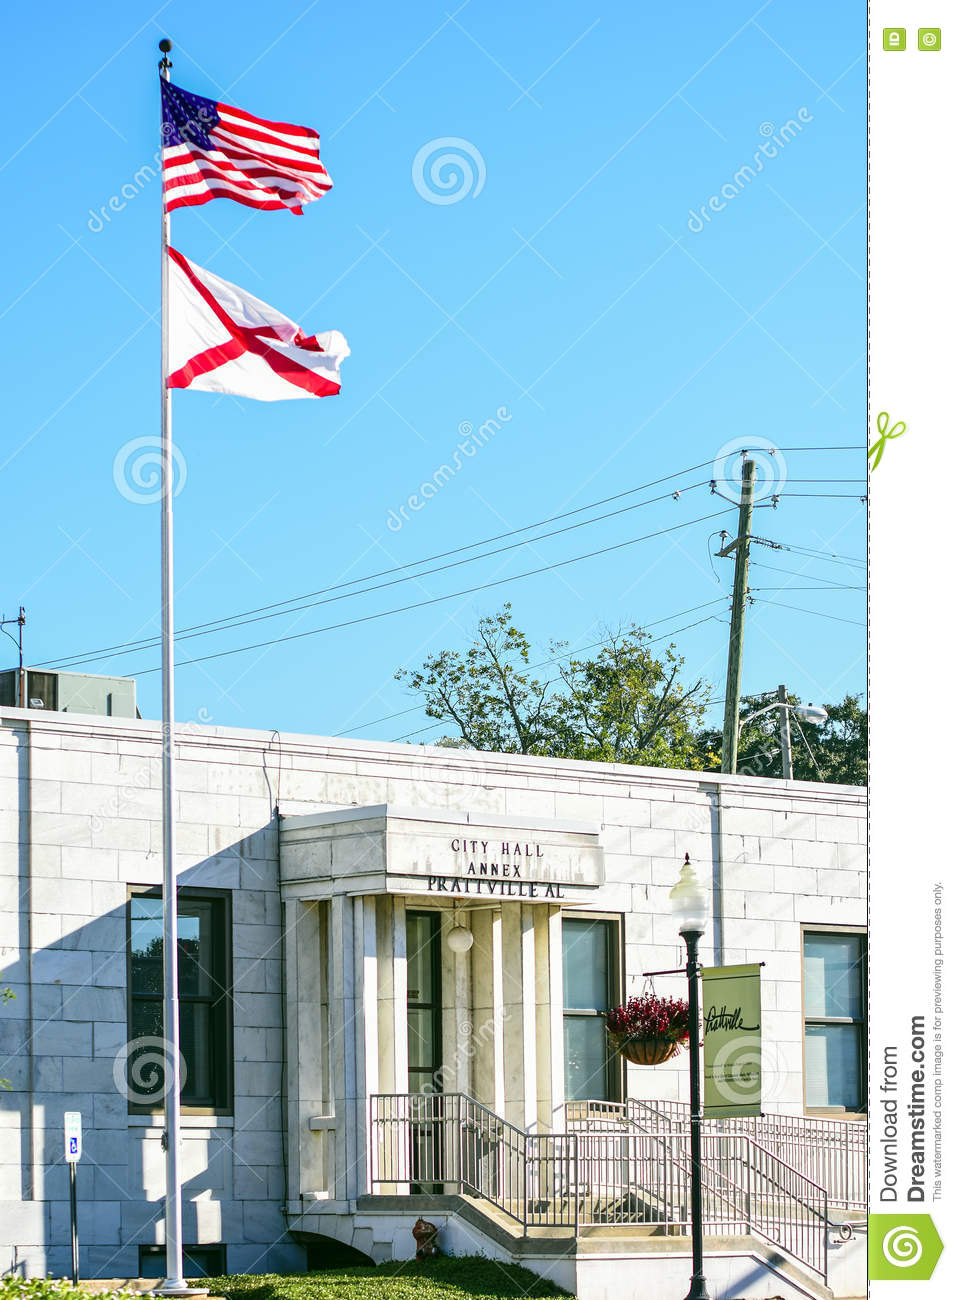 Prattville City Hall Annex editorial photography  Image of